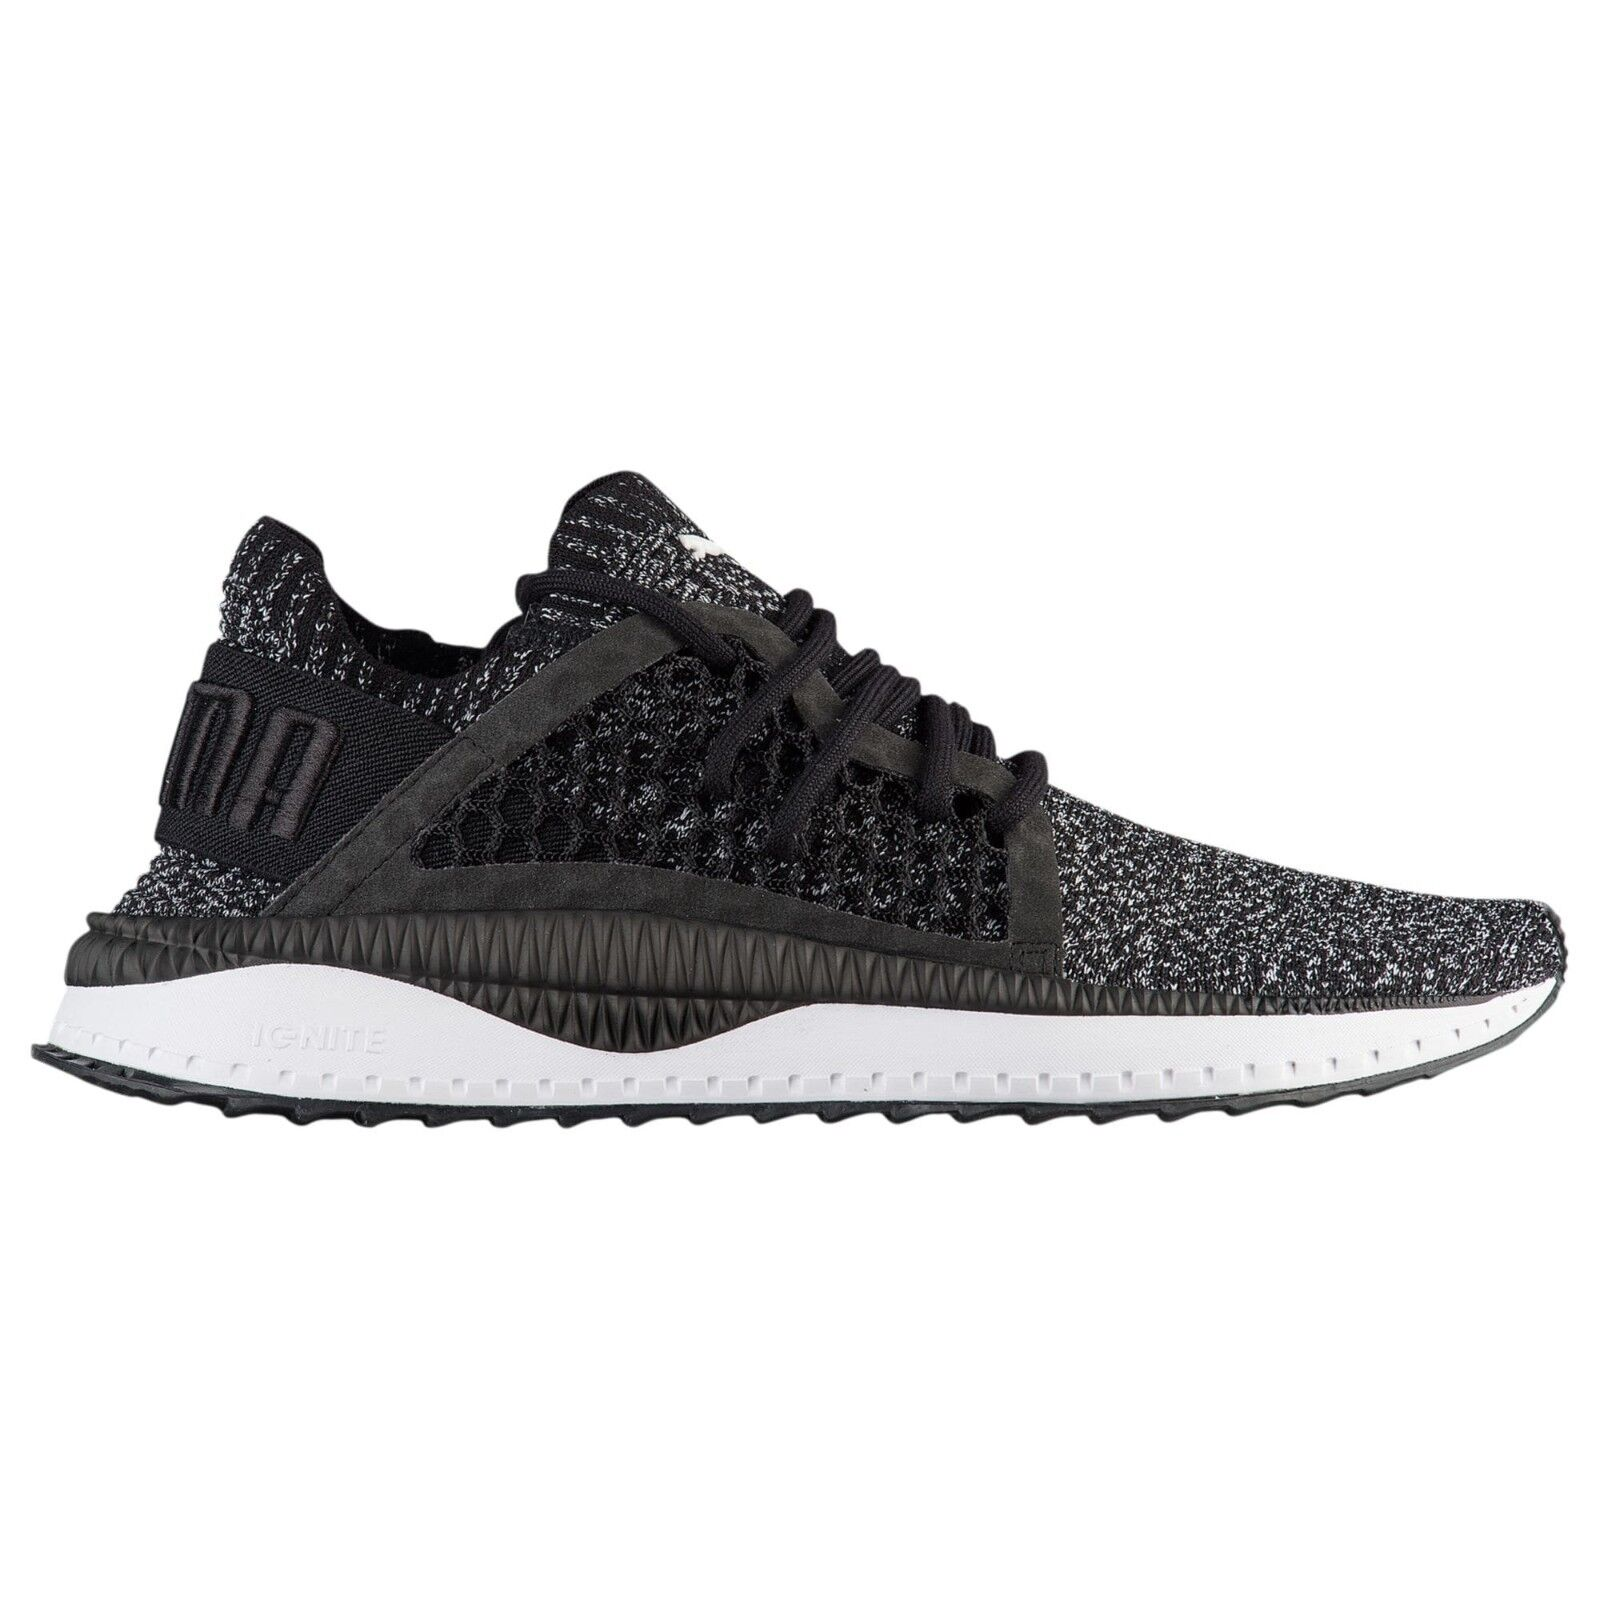 NEW Mens PUMA TSUGI SHINSEI NETFIT EVOKNIT Casual Shoes Black White 36510803